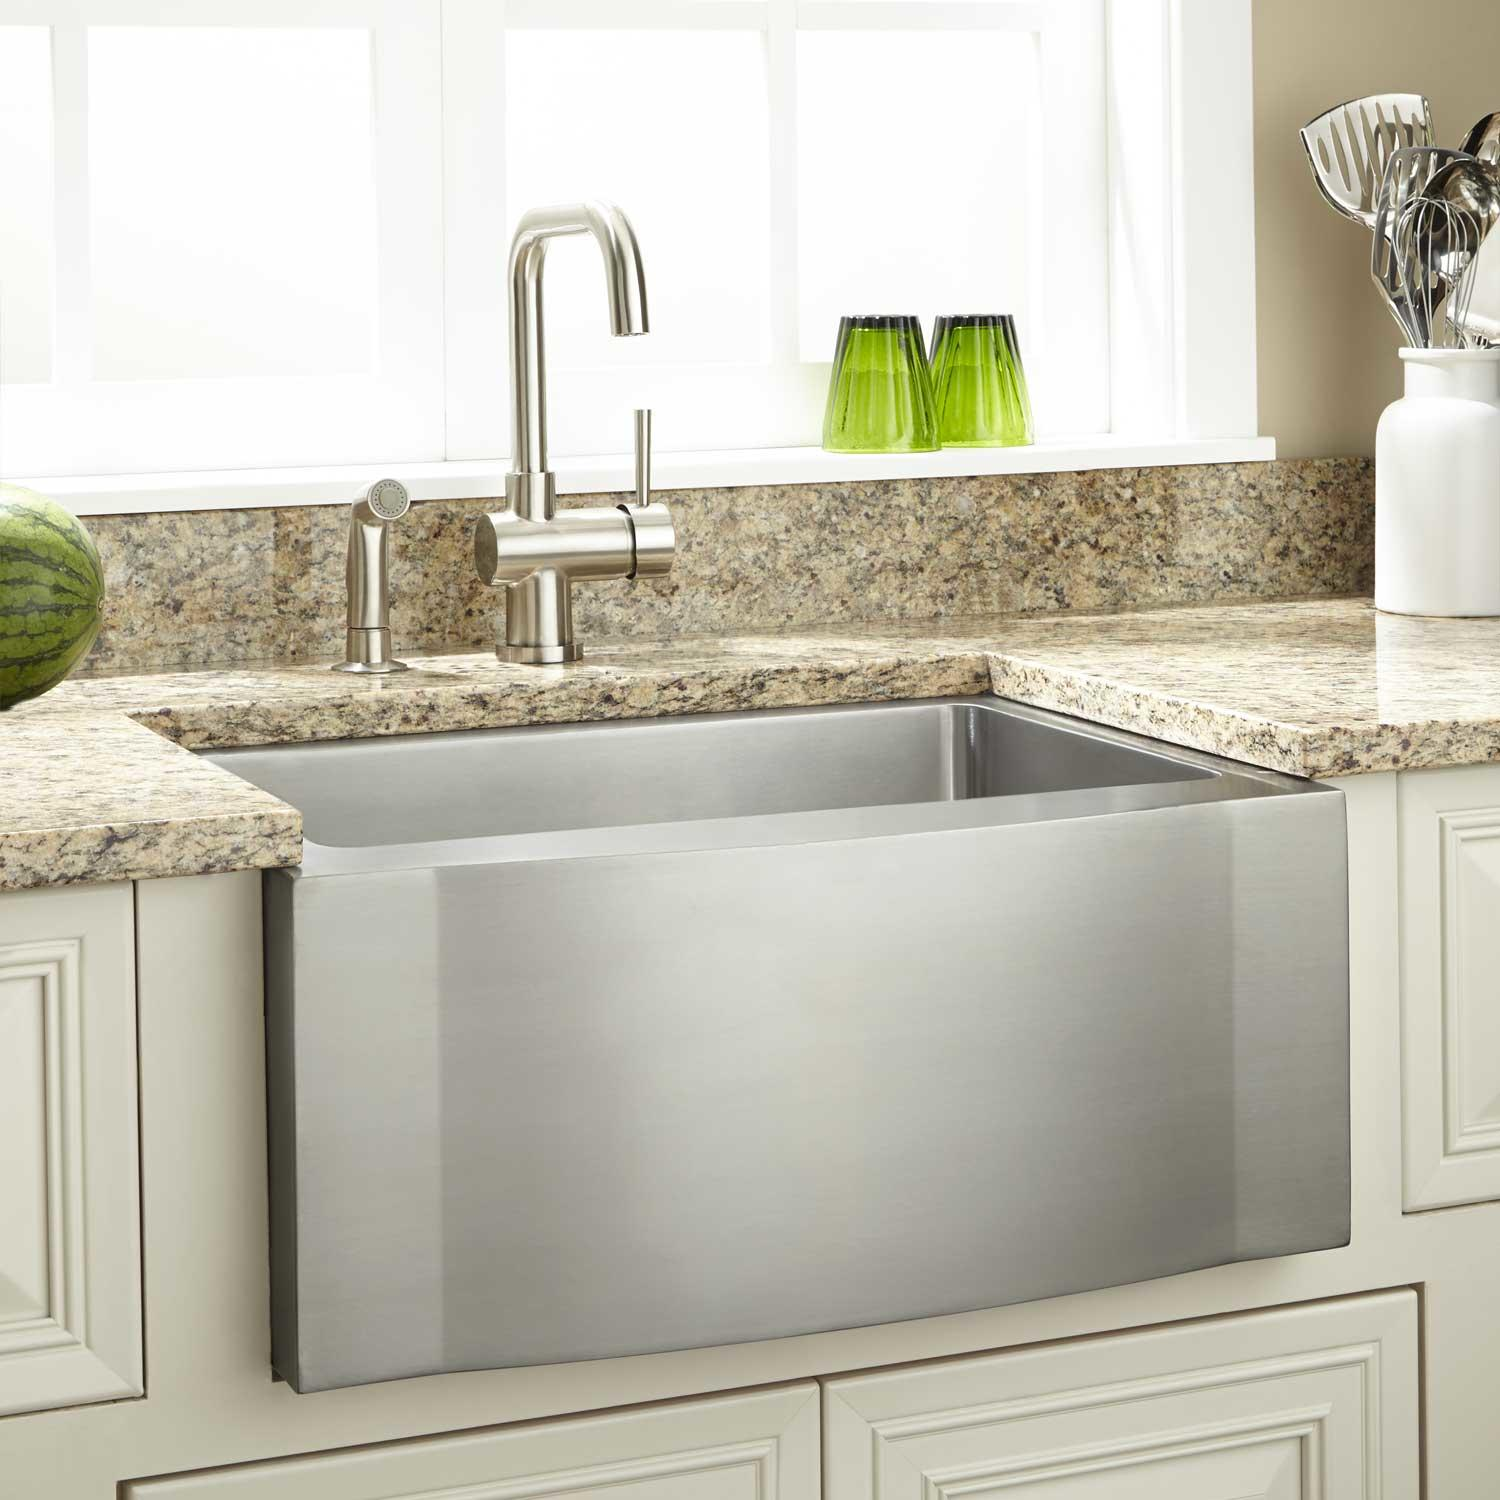 Modern Farmhouse Kitchen Sink Ideas For Your Home Design